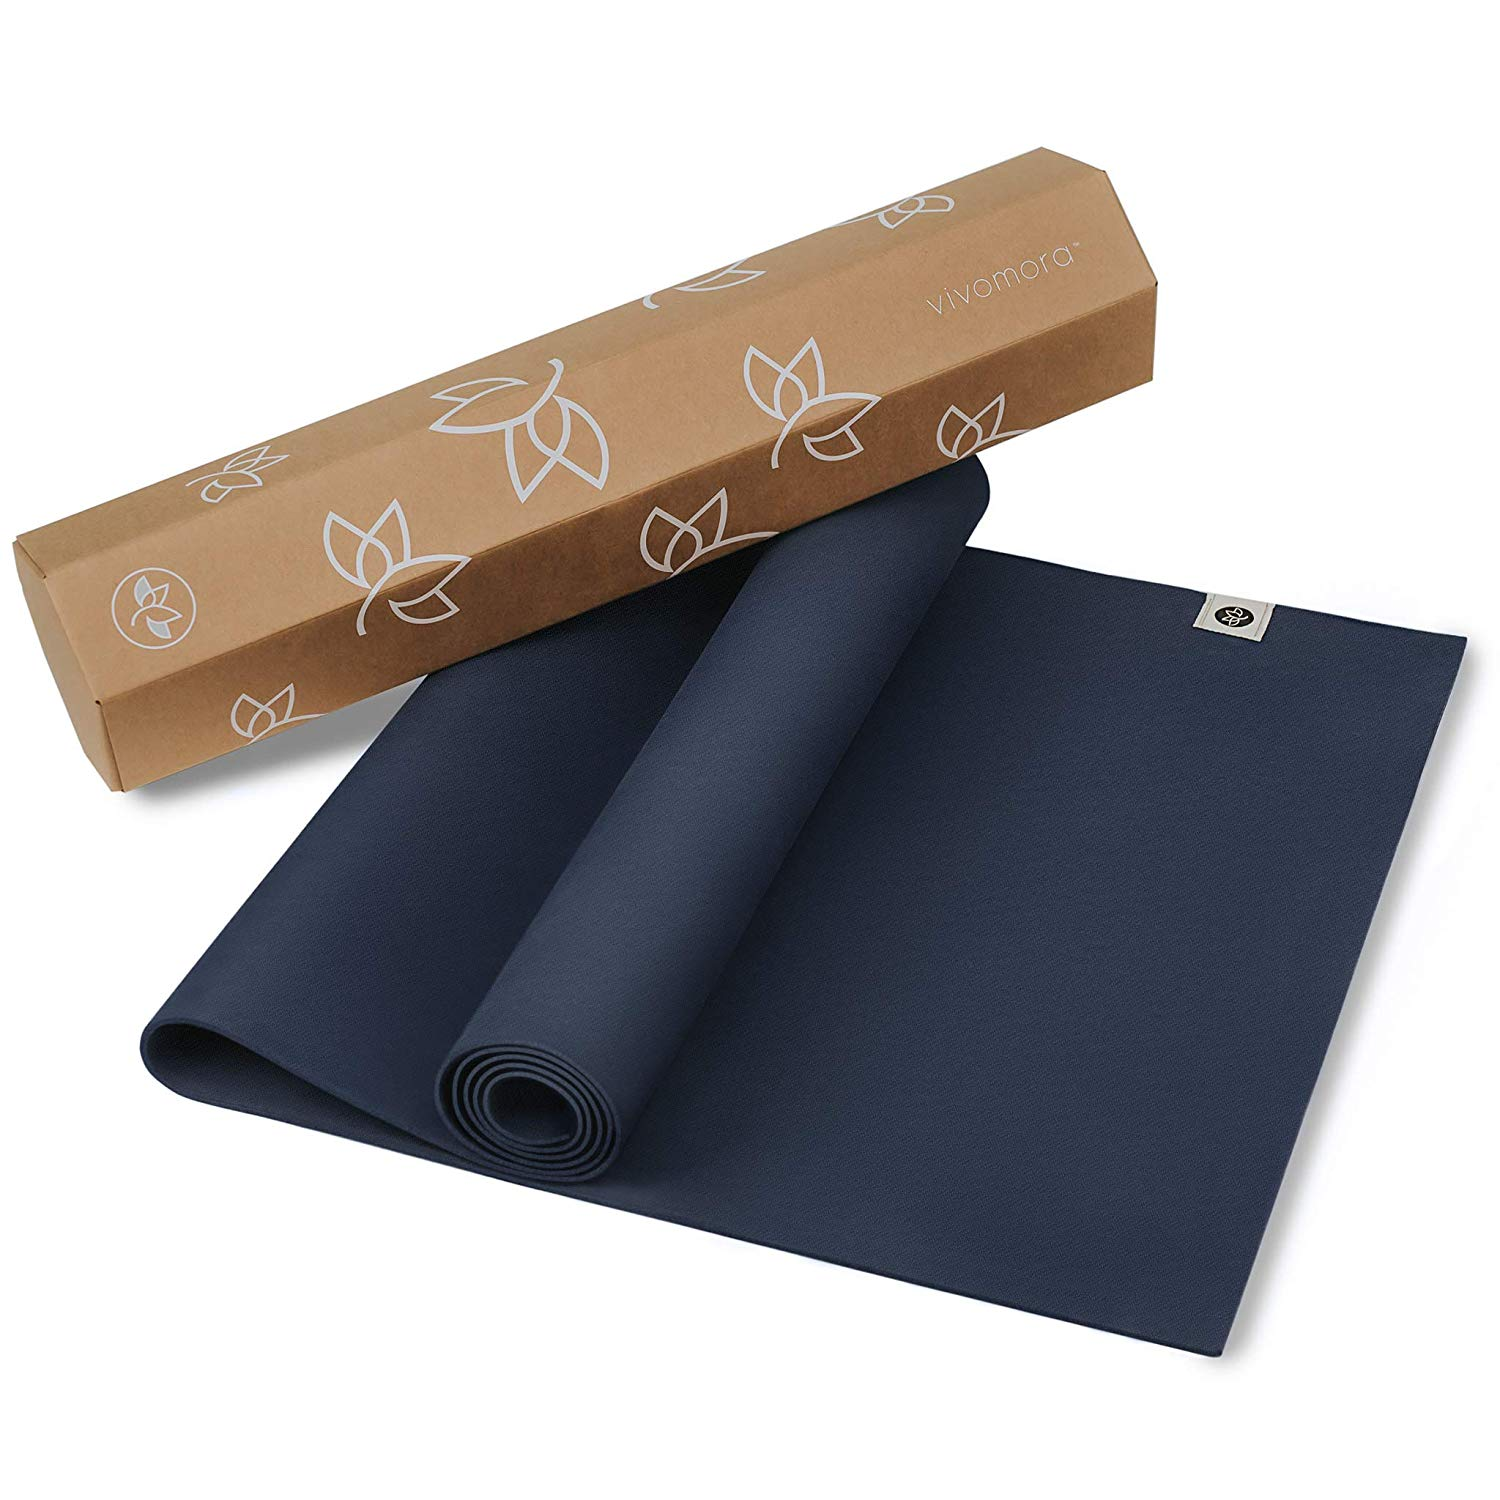 Eco Friendly Yoga Mat   Natural Rubber   with  Non Slip Pattern  for  Meditation Stretching Fitness   Multipurpose Hot Yoga Pilates and Exercise Mats  for  Men and Women     In Home Gym Access